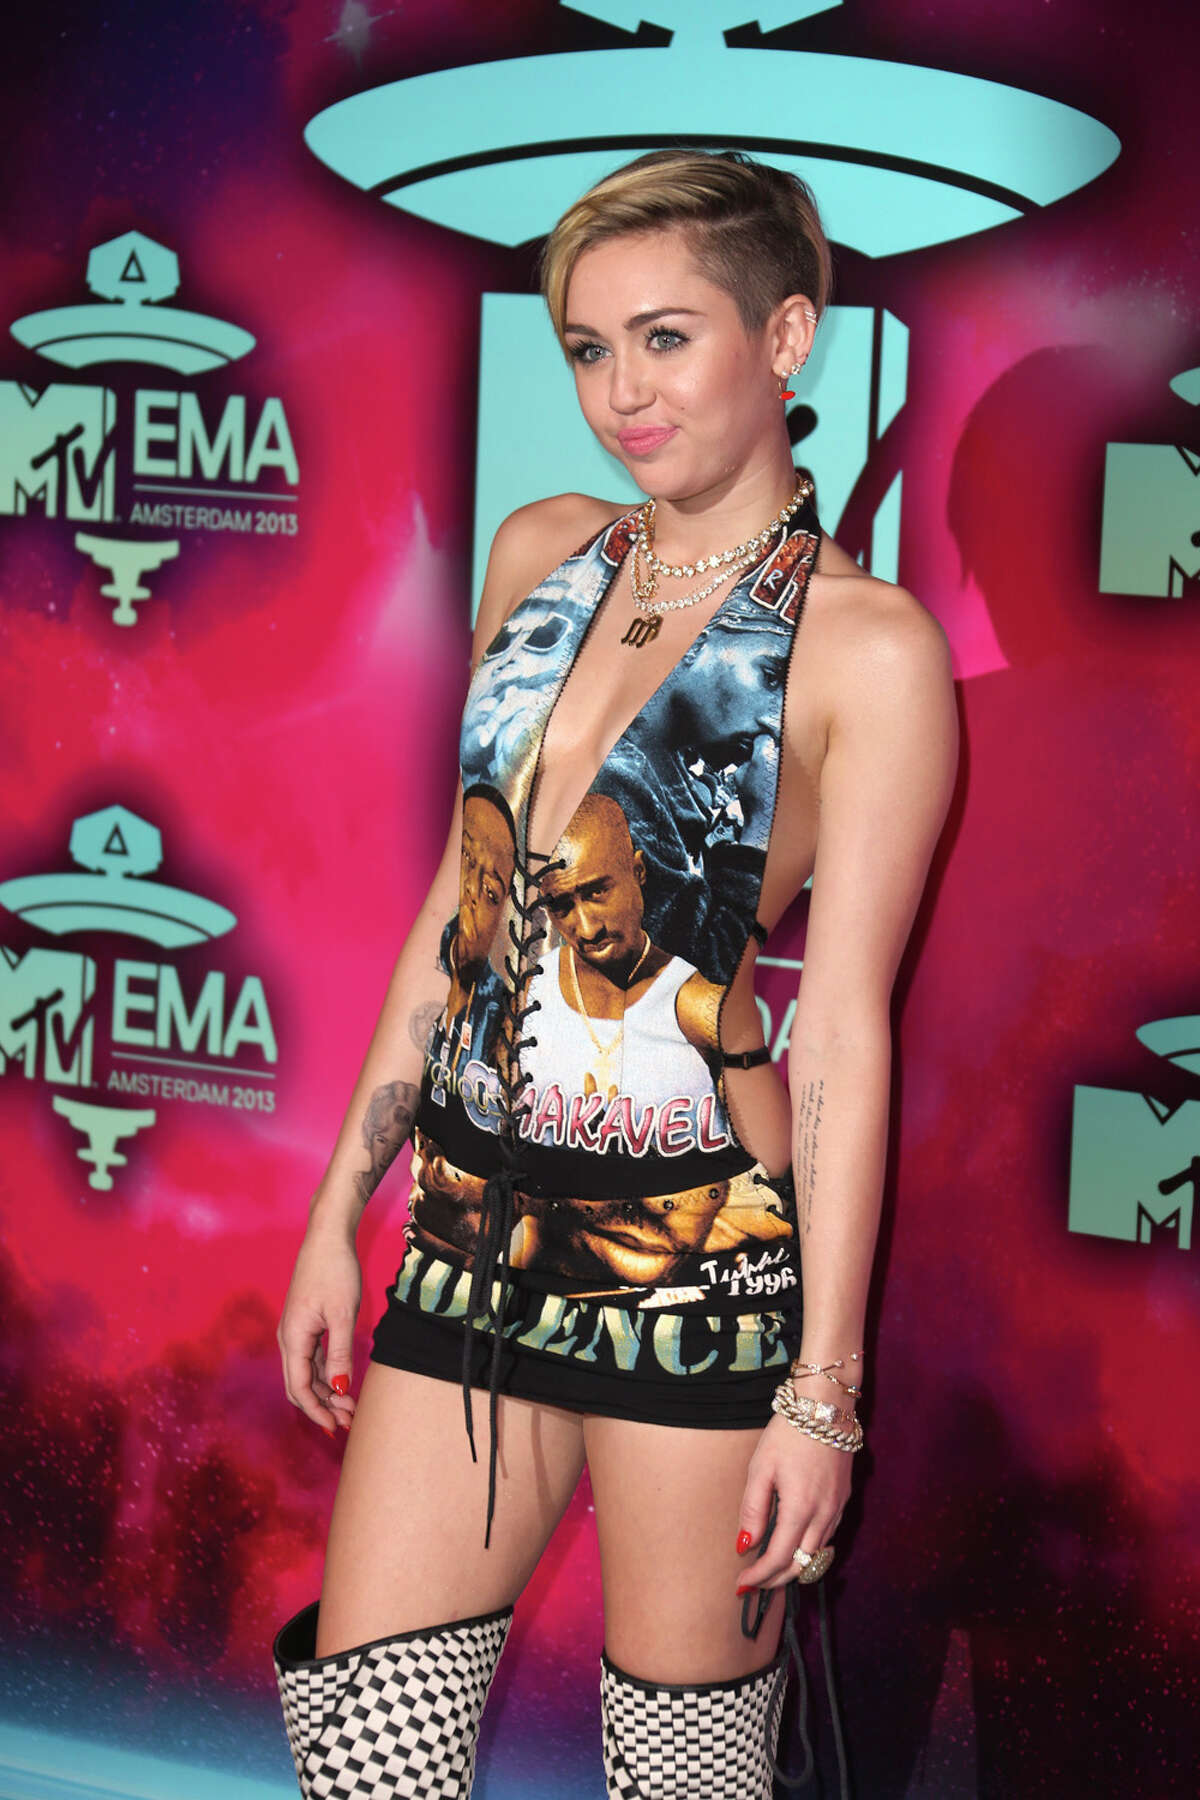 Miley Cyrus poses for photographers upon arrival at the 2013 MTV Europe Music Awards, in Amsterdam, Netherlands, Sunday, Nov. 10, 2013.